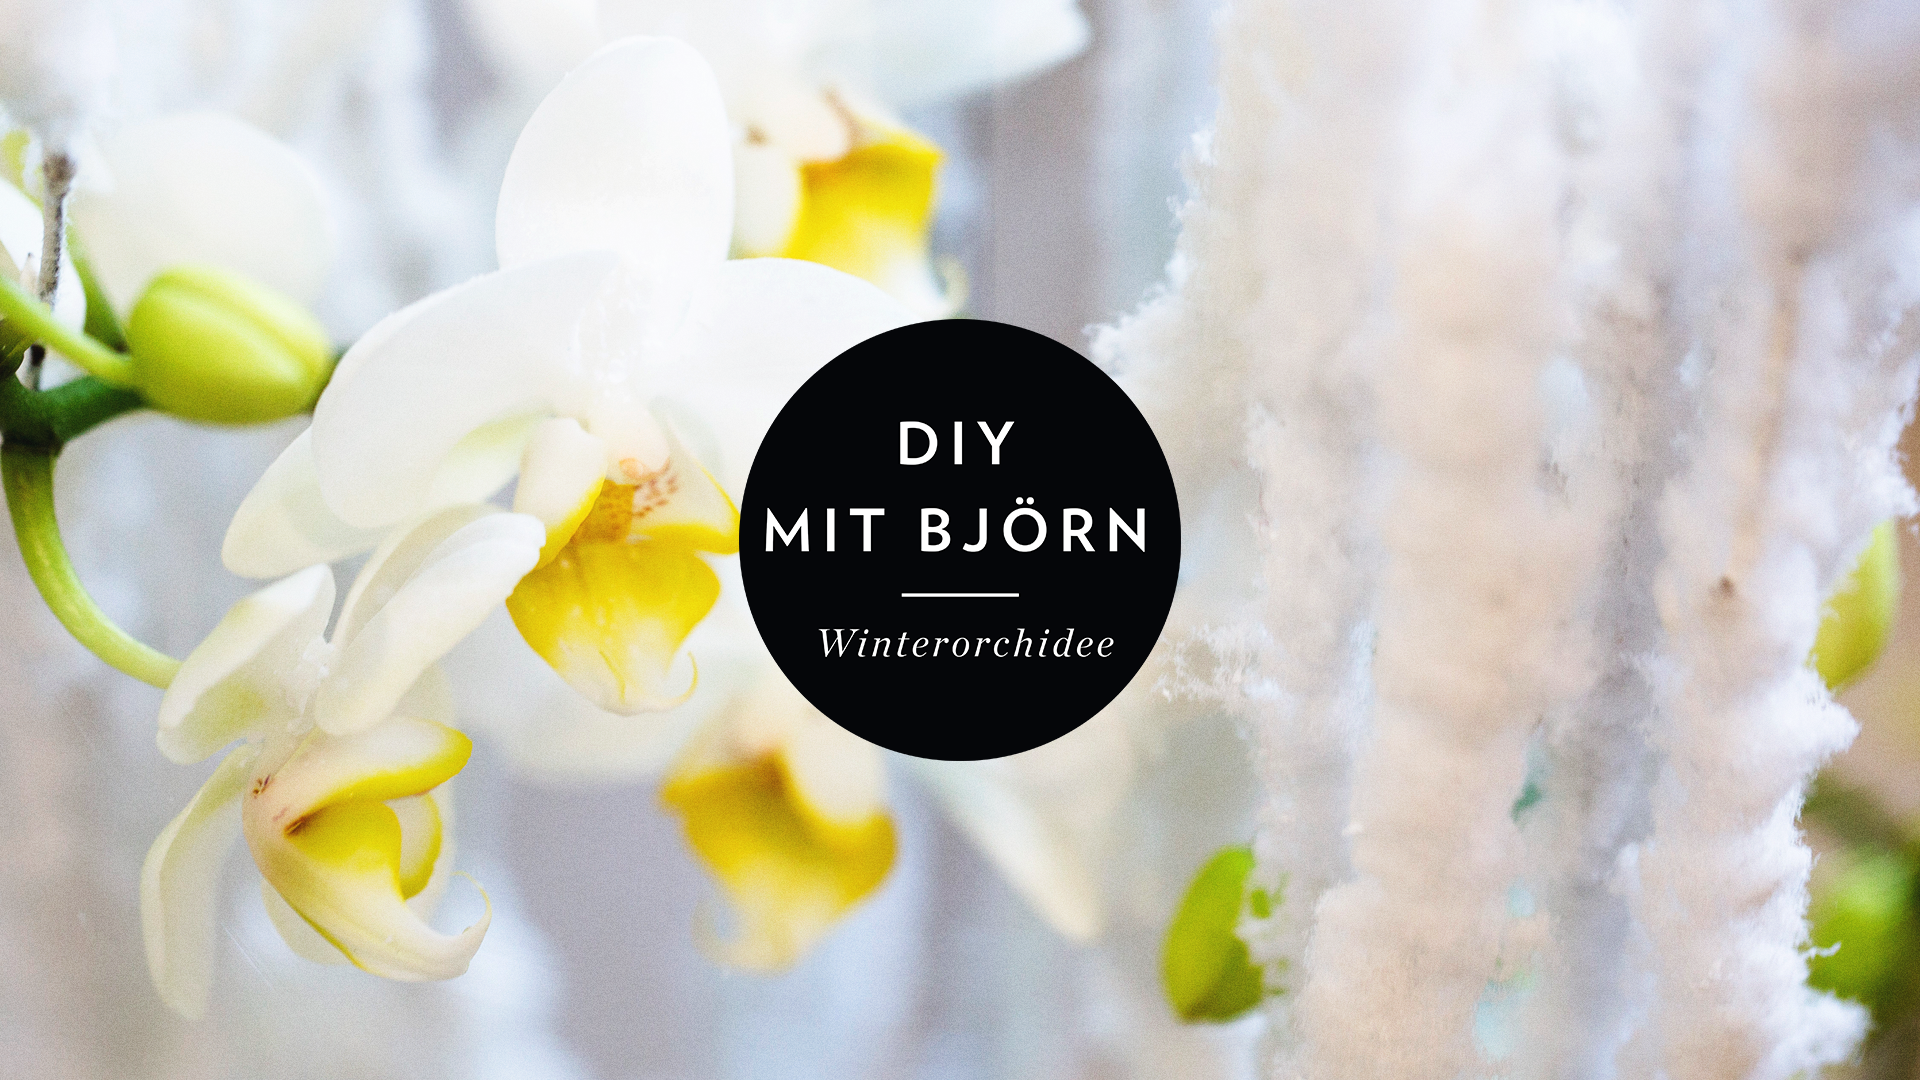 DIY MIT BJÖRN: Winterorchidee in der Vase